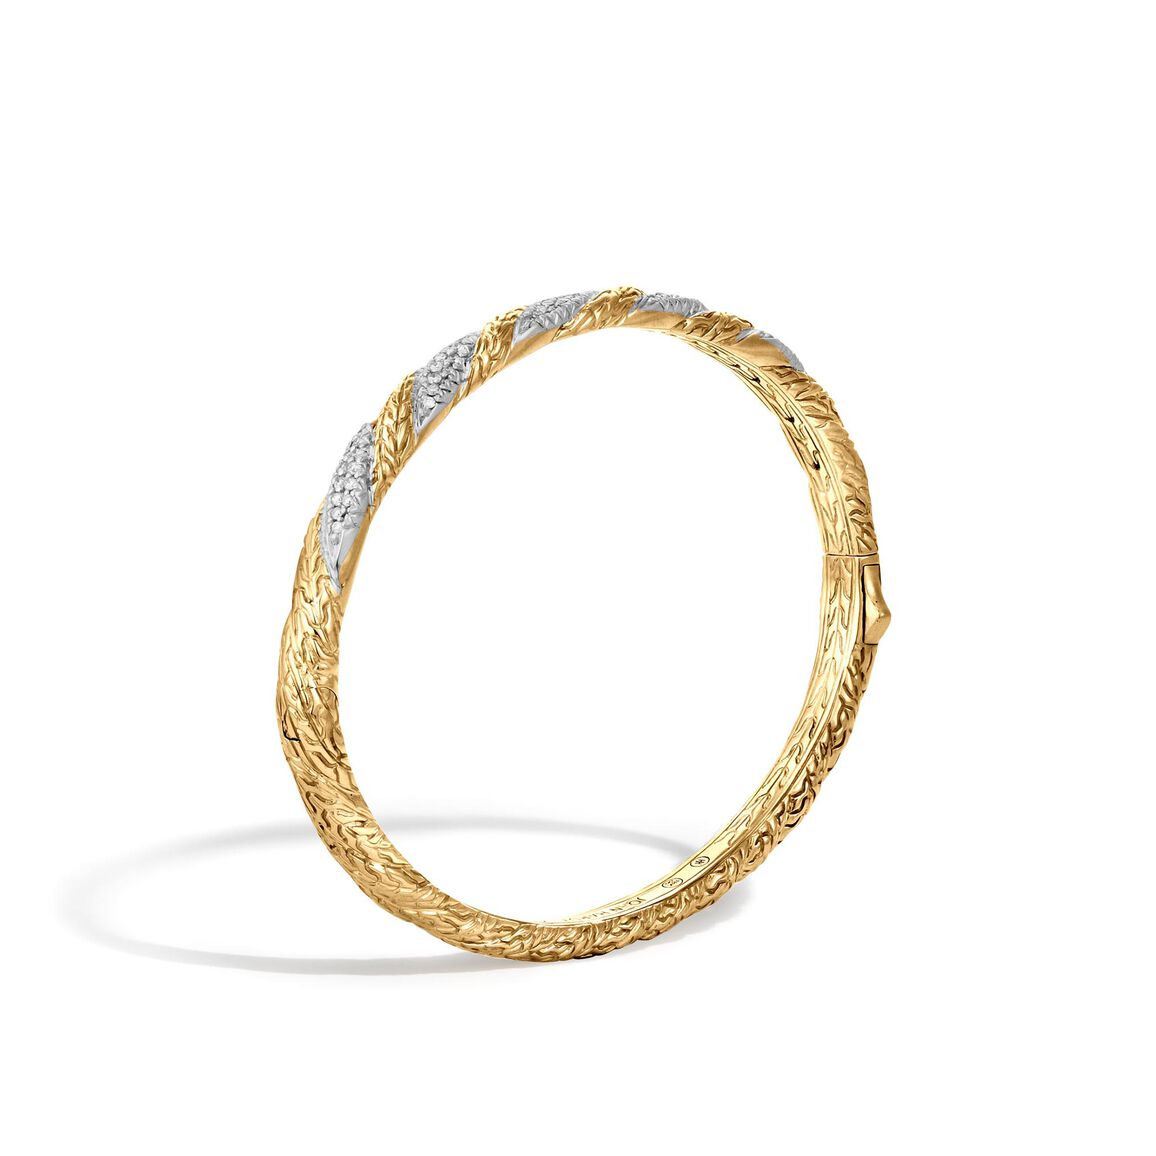 Twisted Chain 5MM Hinged Bangle in 18K Gold with Diamonds